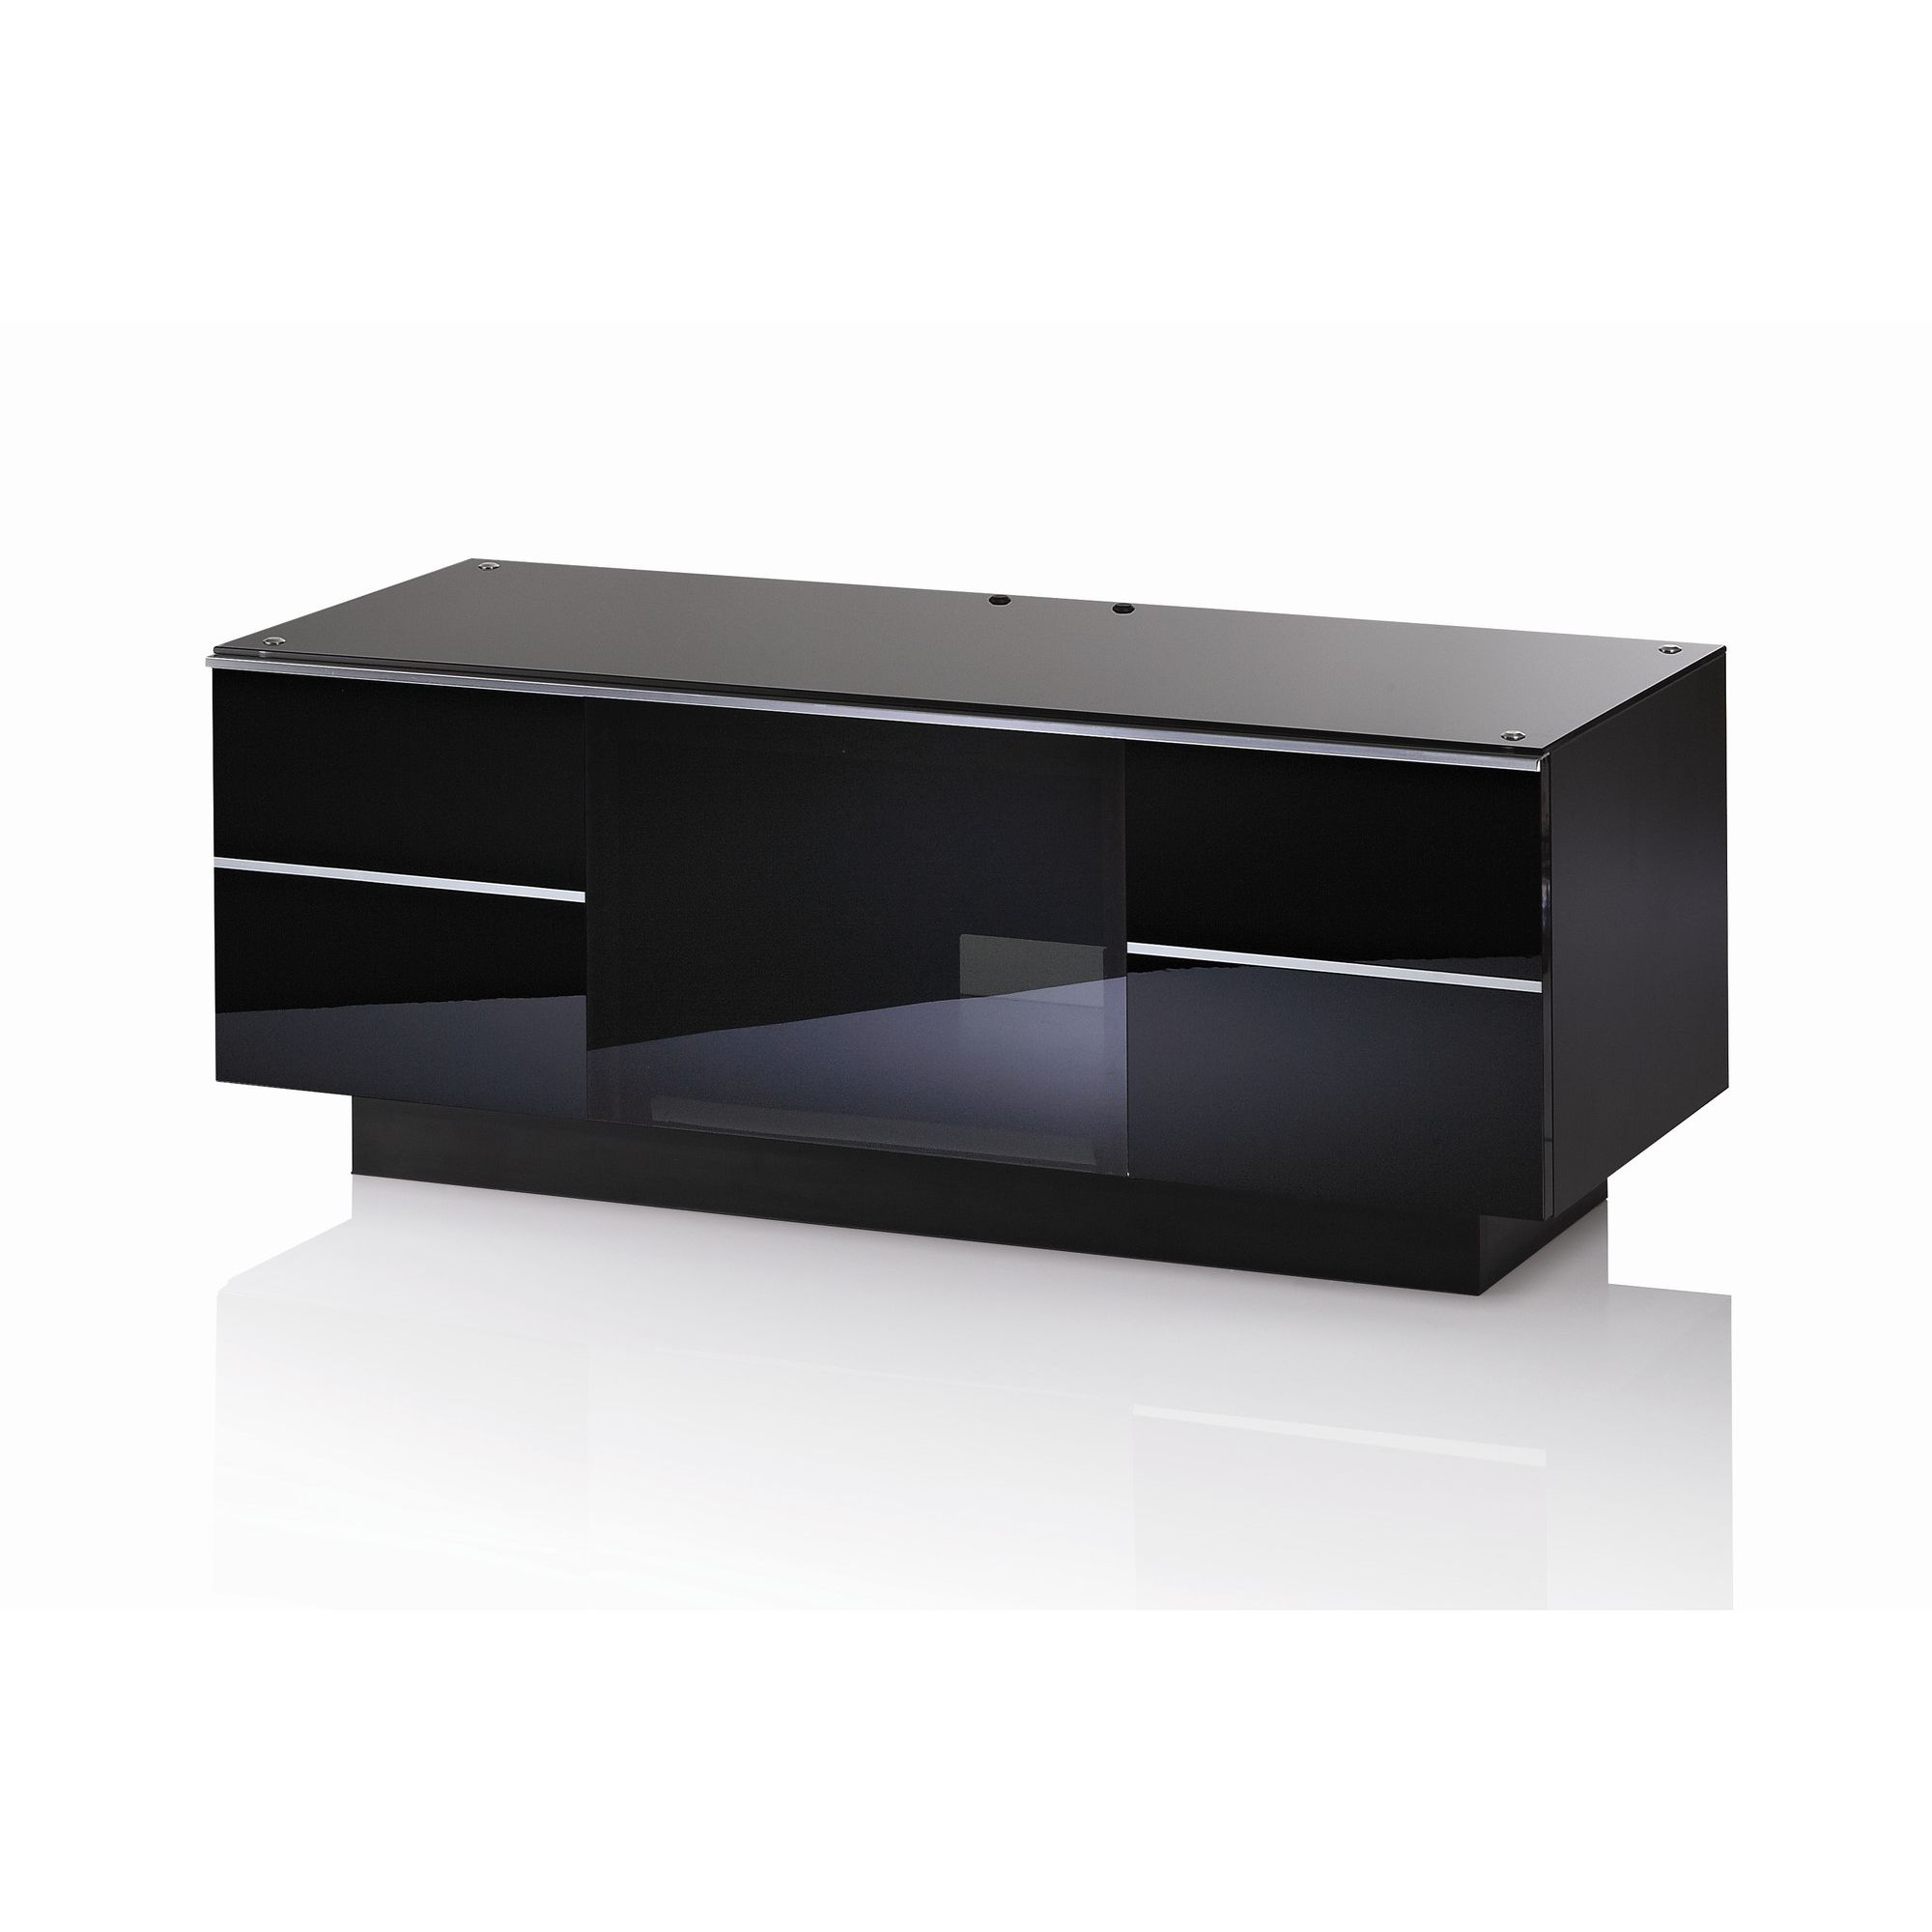 UK-CF G Series GG TV Stand - 110cm - Black at Tesco Direct